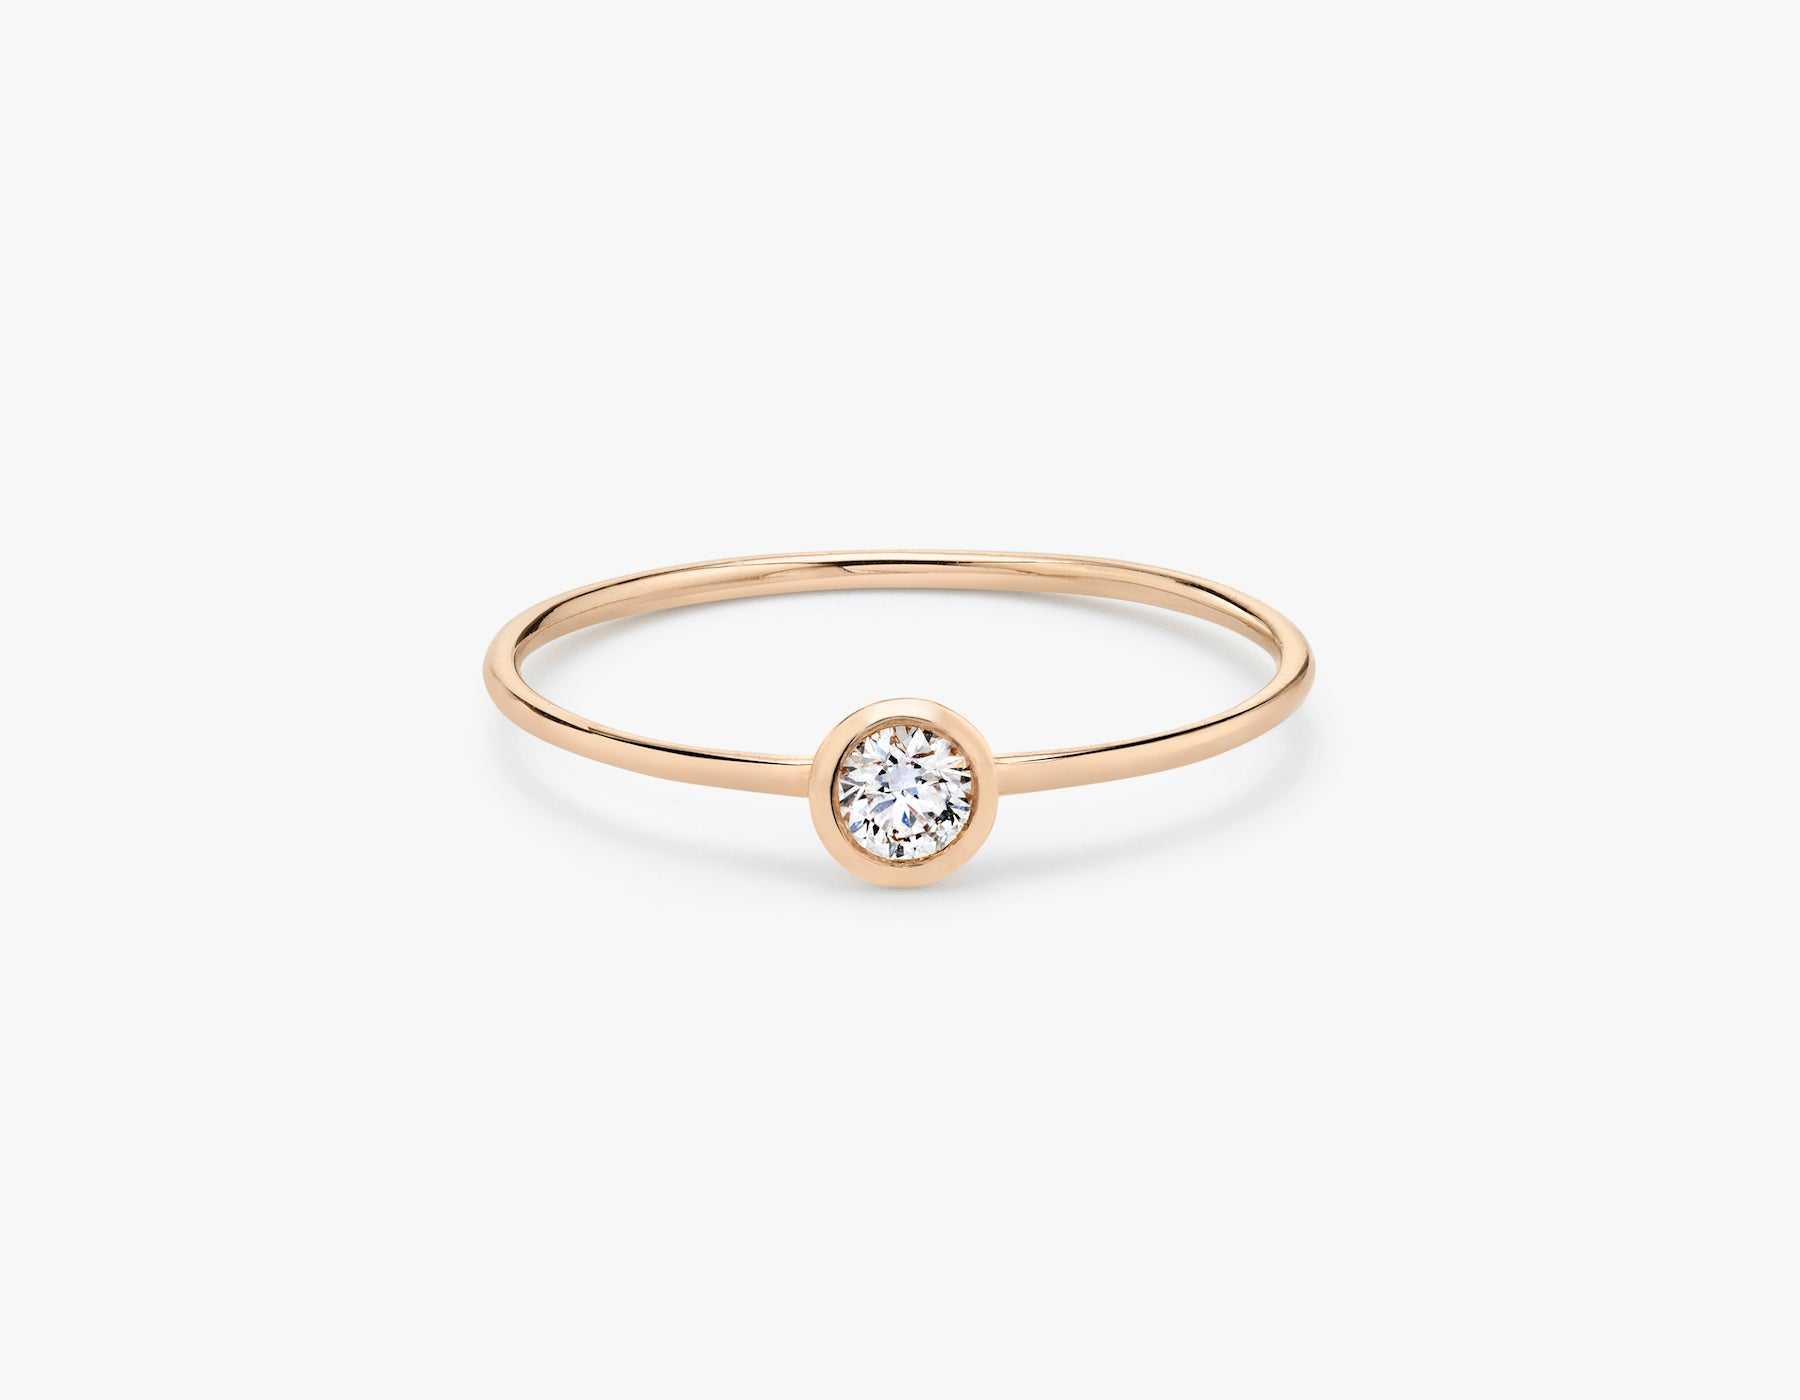 Vrai classic minimalist Round Diamond Bezel Ring, 14K Rose Gold